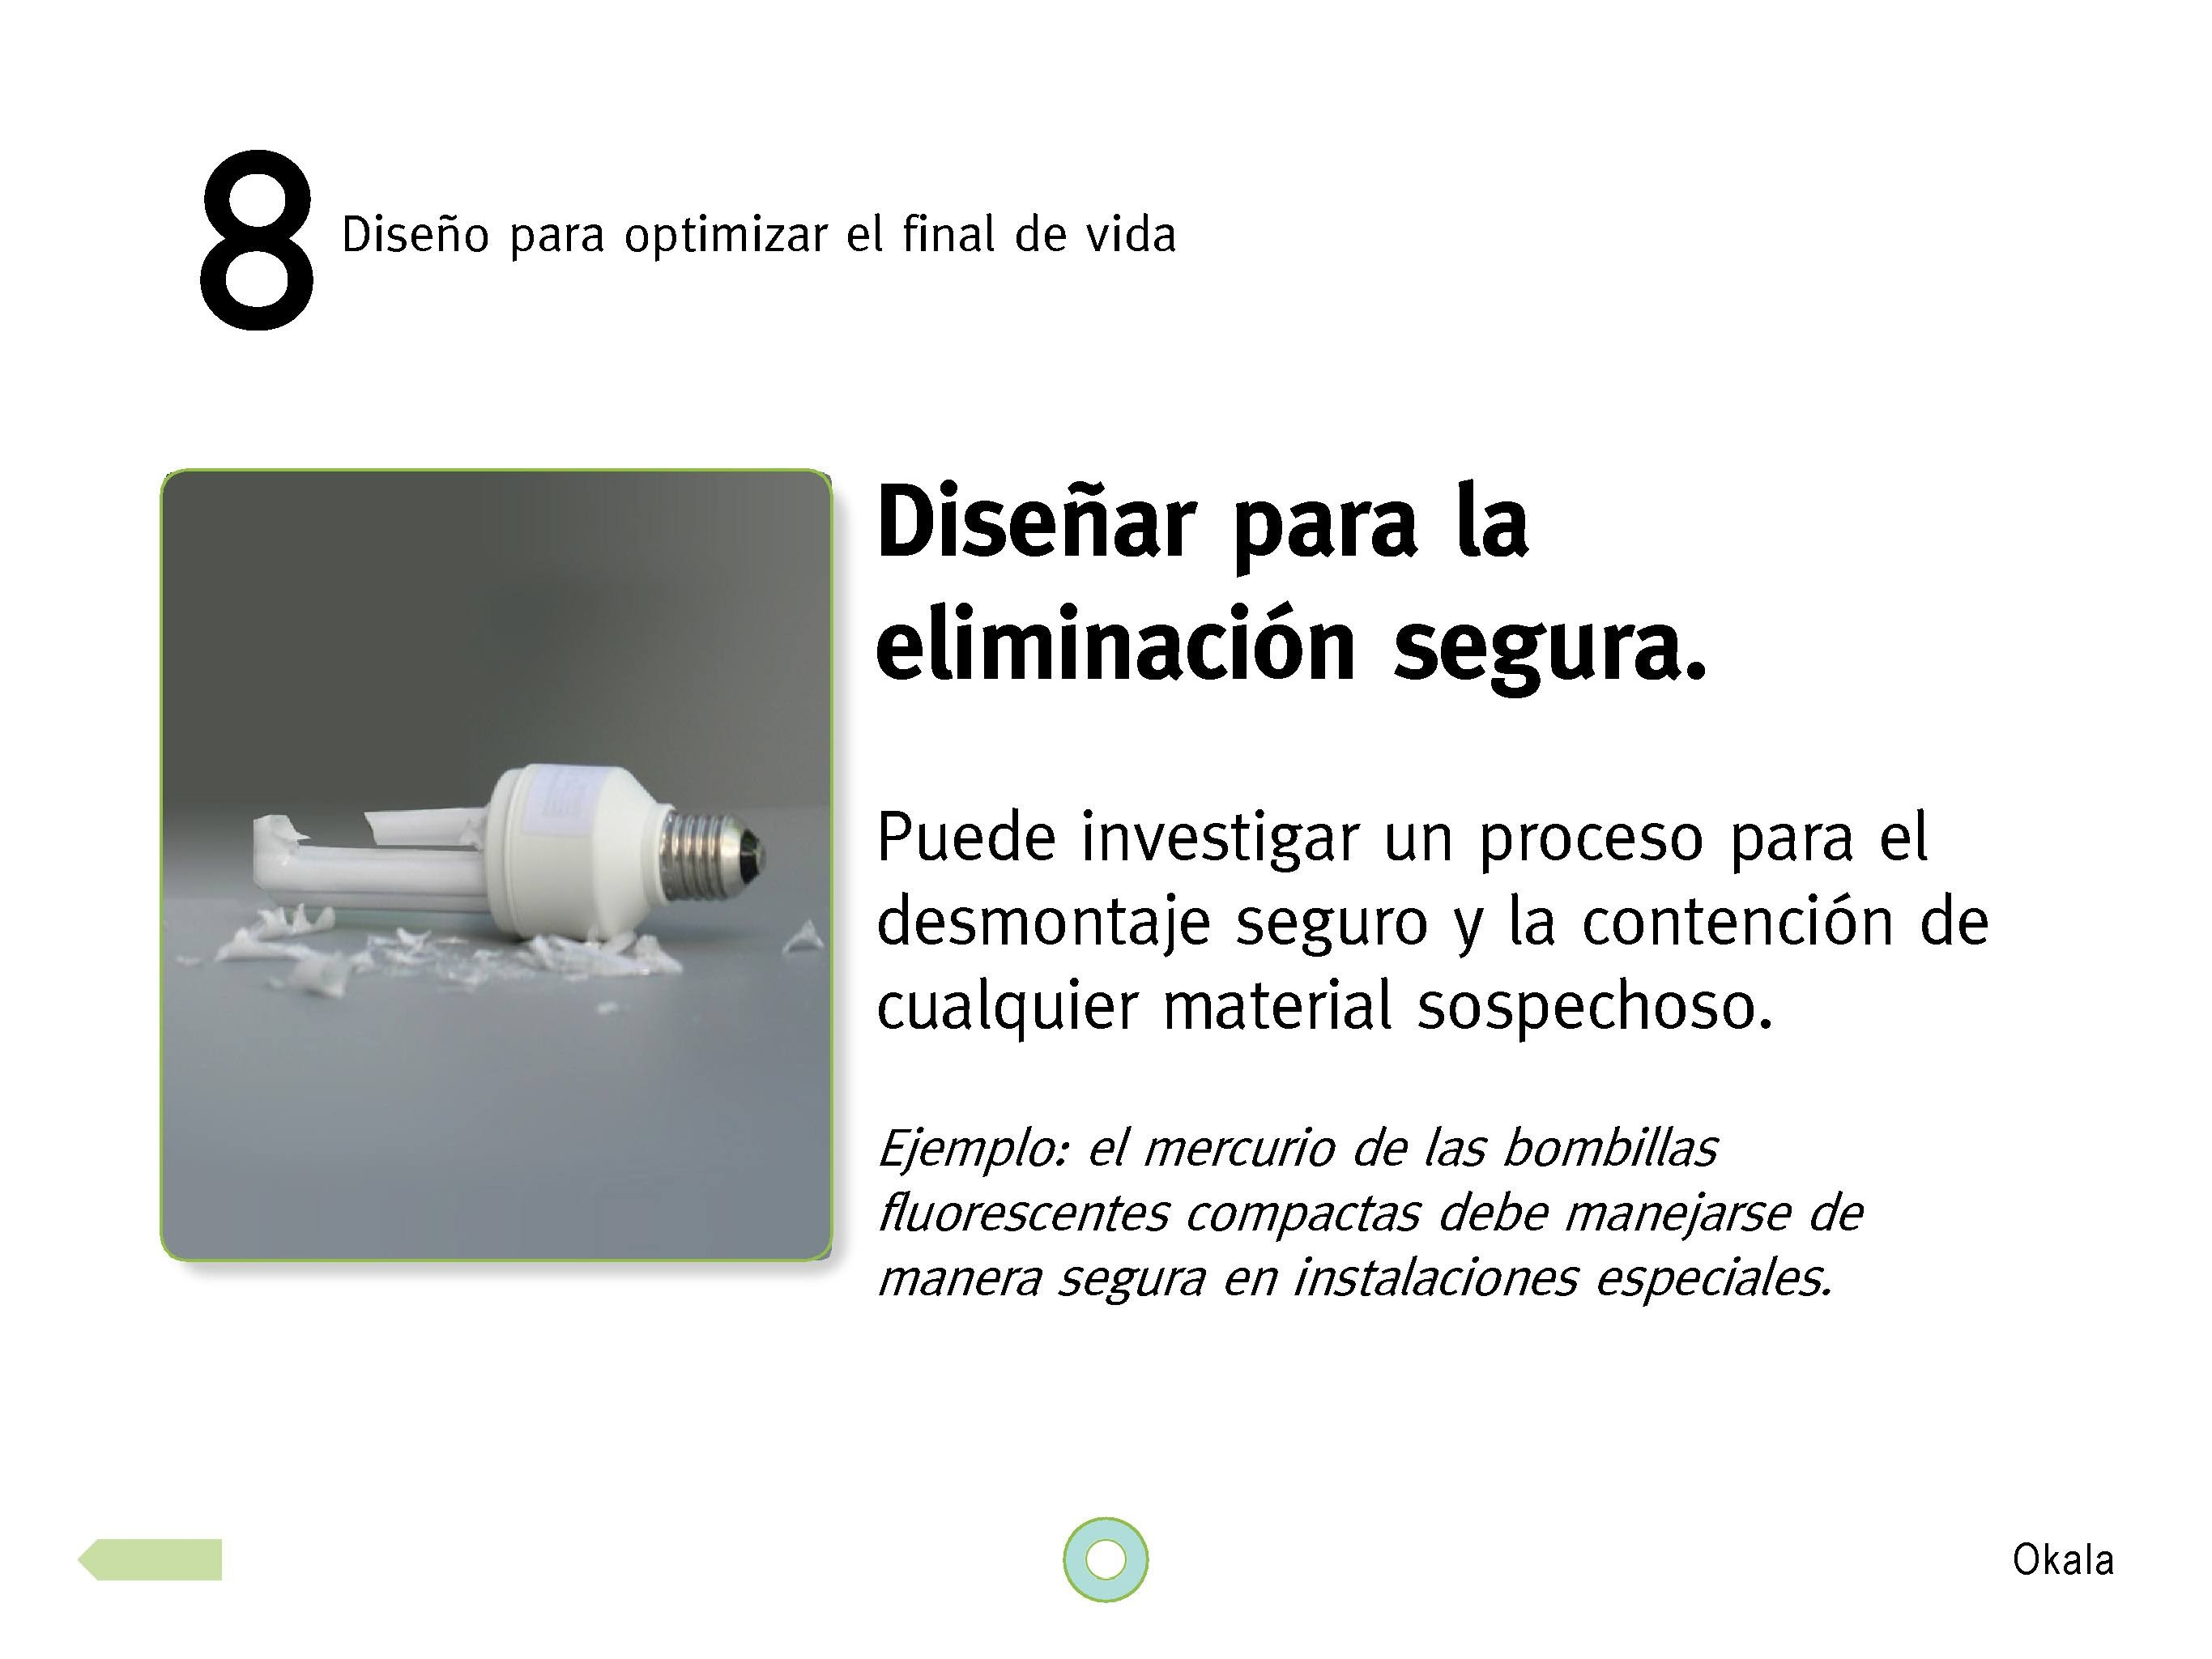 okala-ecodesign-strategy-guide-2012-spanish.new_page_46-1